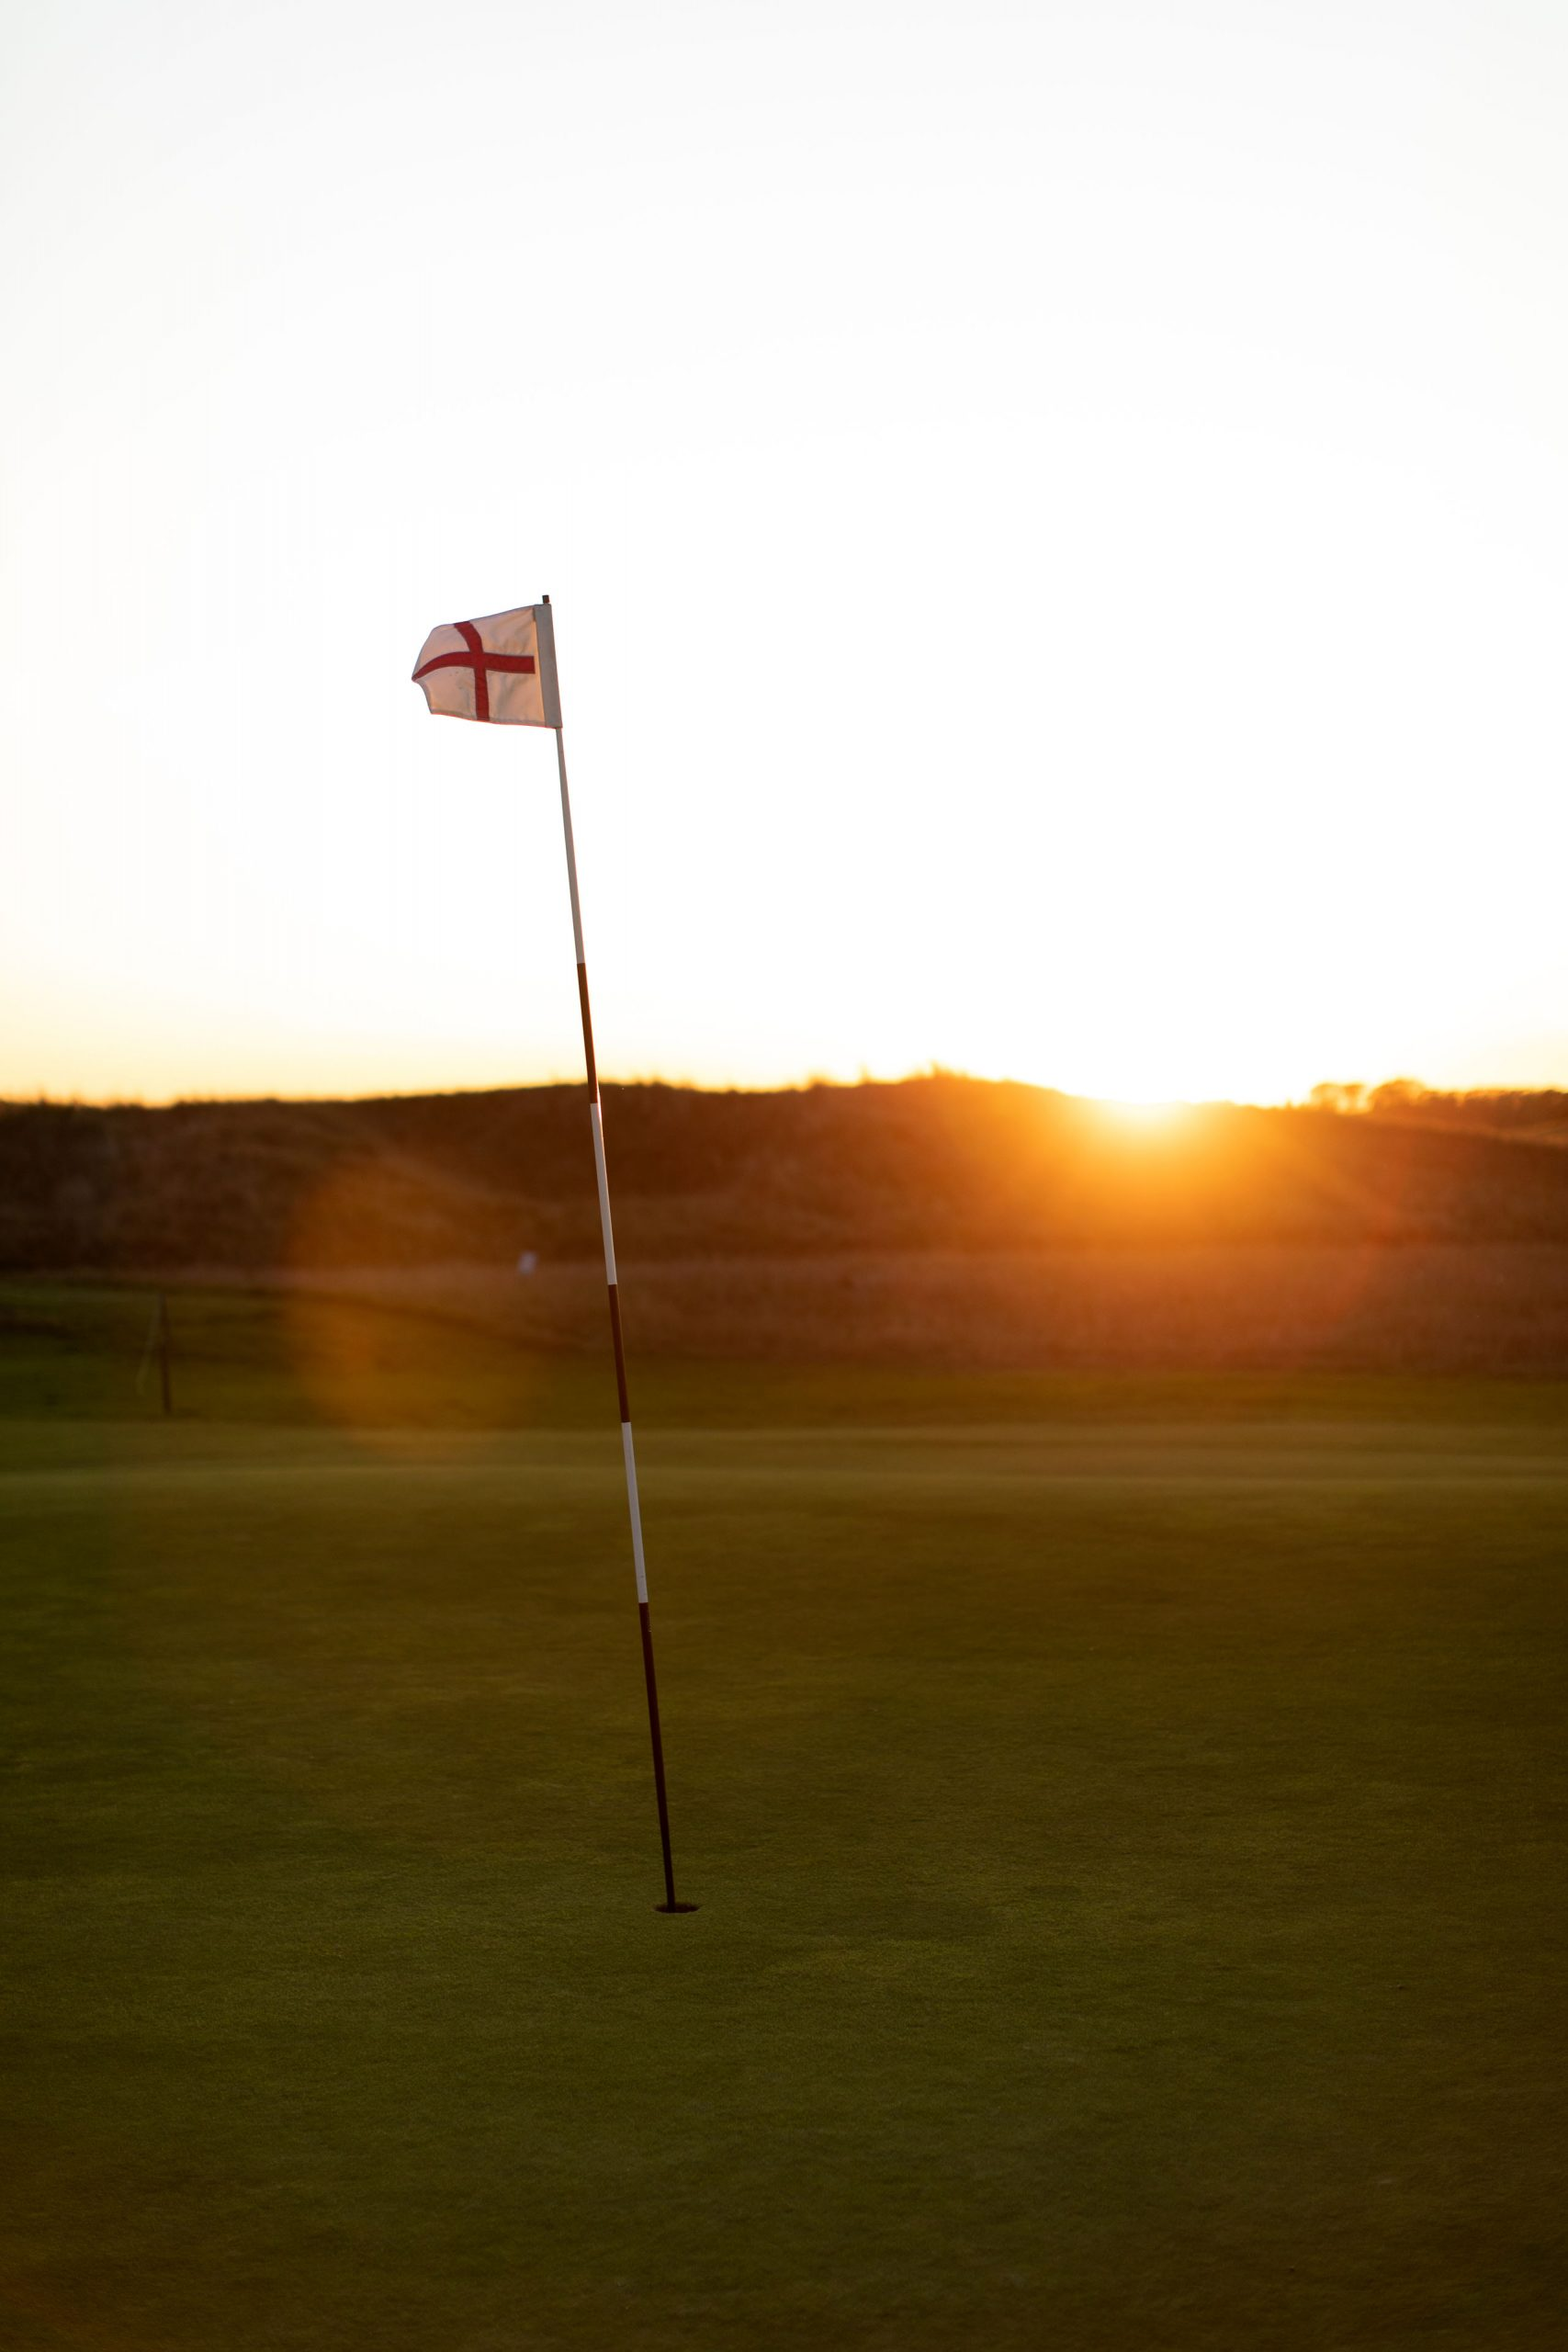 Royal St. George 5th Hole, Photo by Tom Shaw